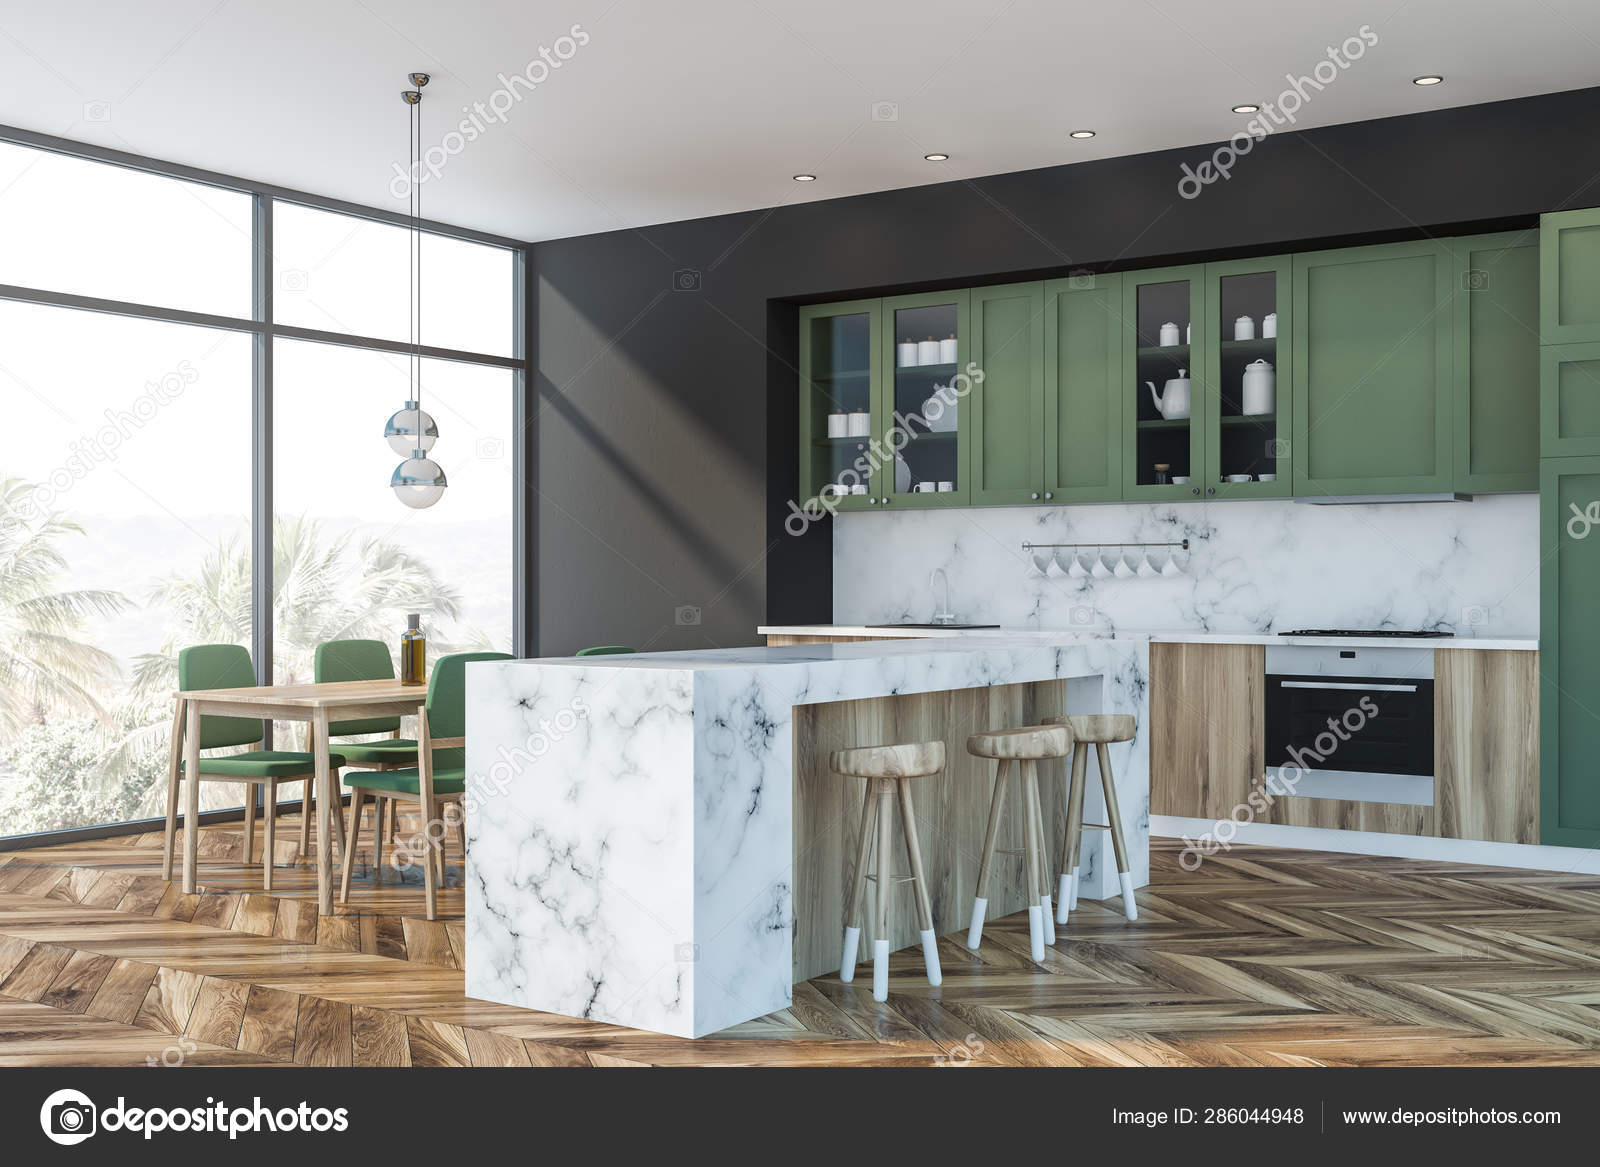 Green And Marble Kitchen Bar And Table Stock Photo C Denisismagilov 286044948